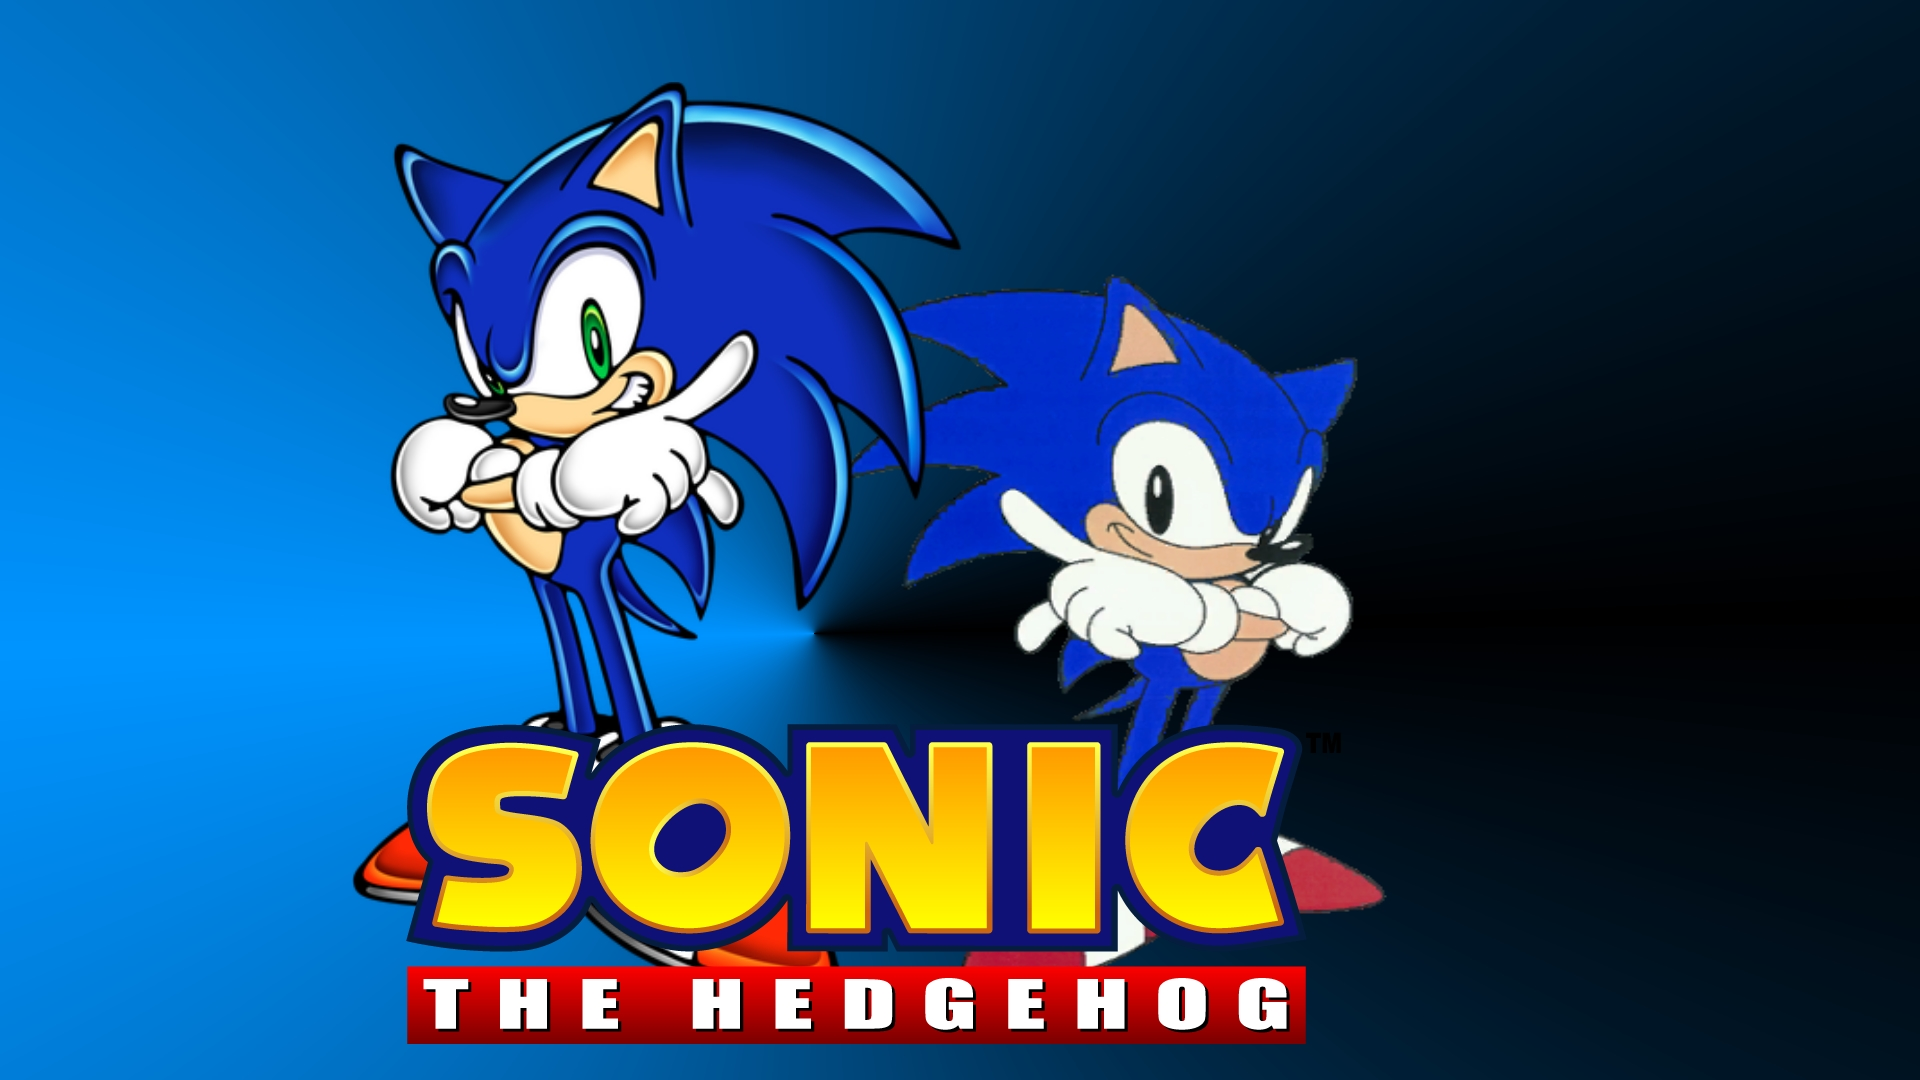 Sonic The Hedgehog Live Wallpaper